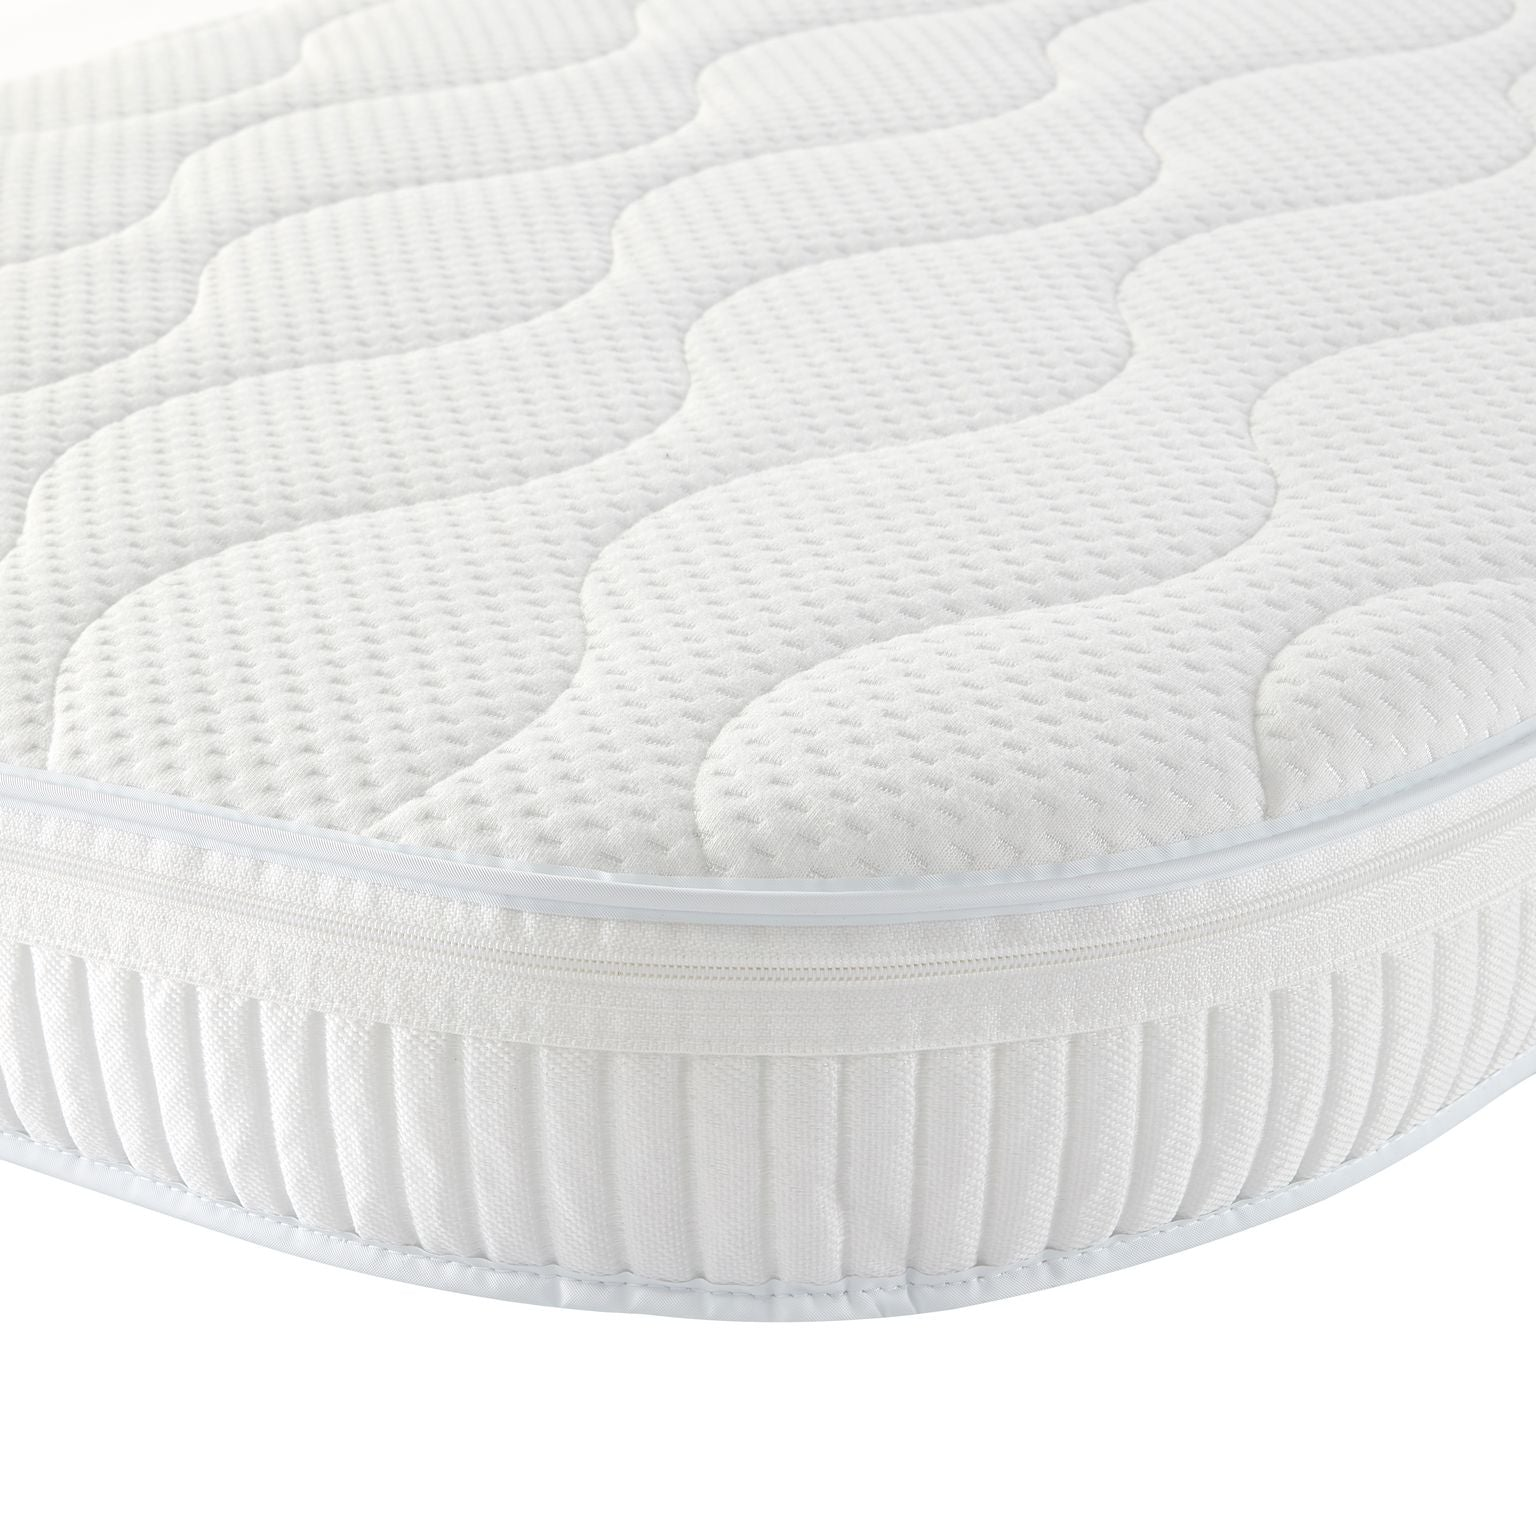 Gaia Baby Maxi-cot Sleep Mattress